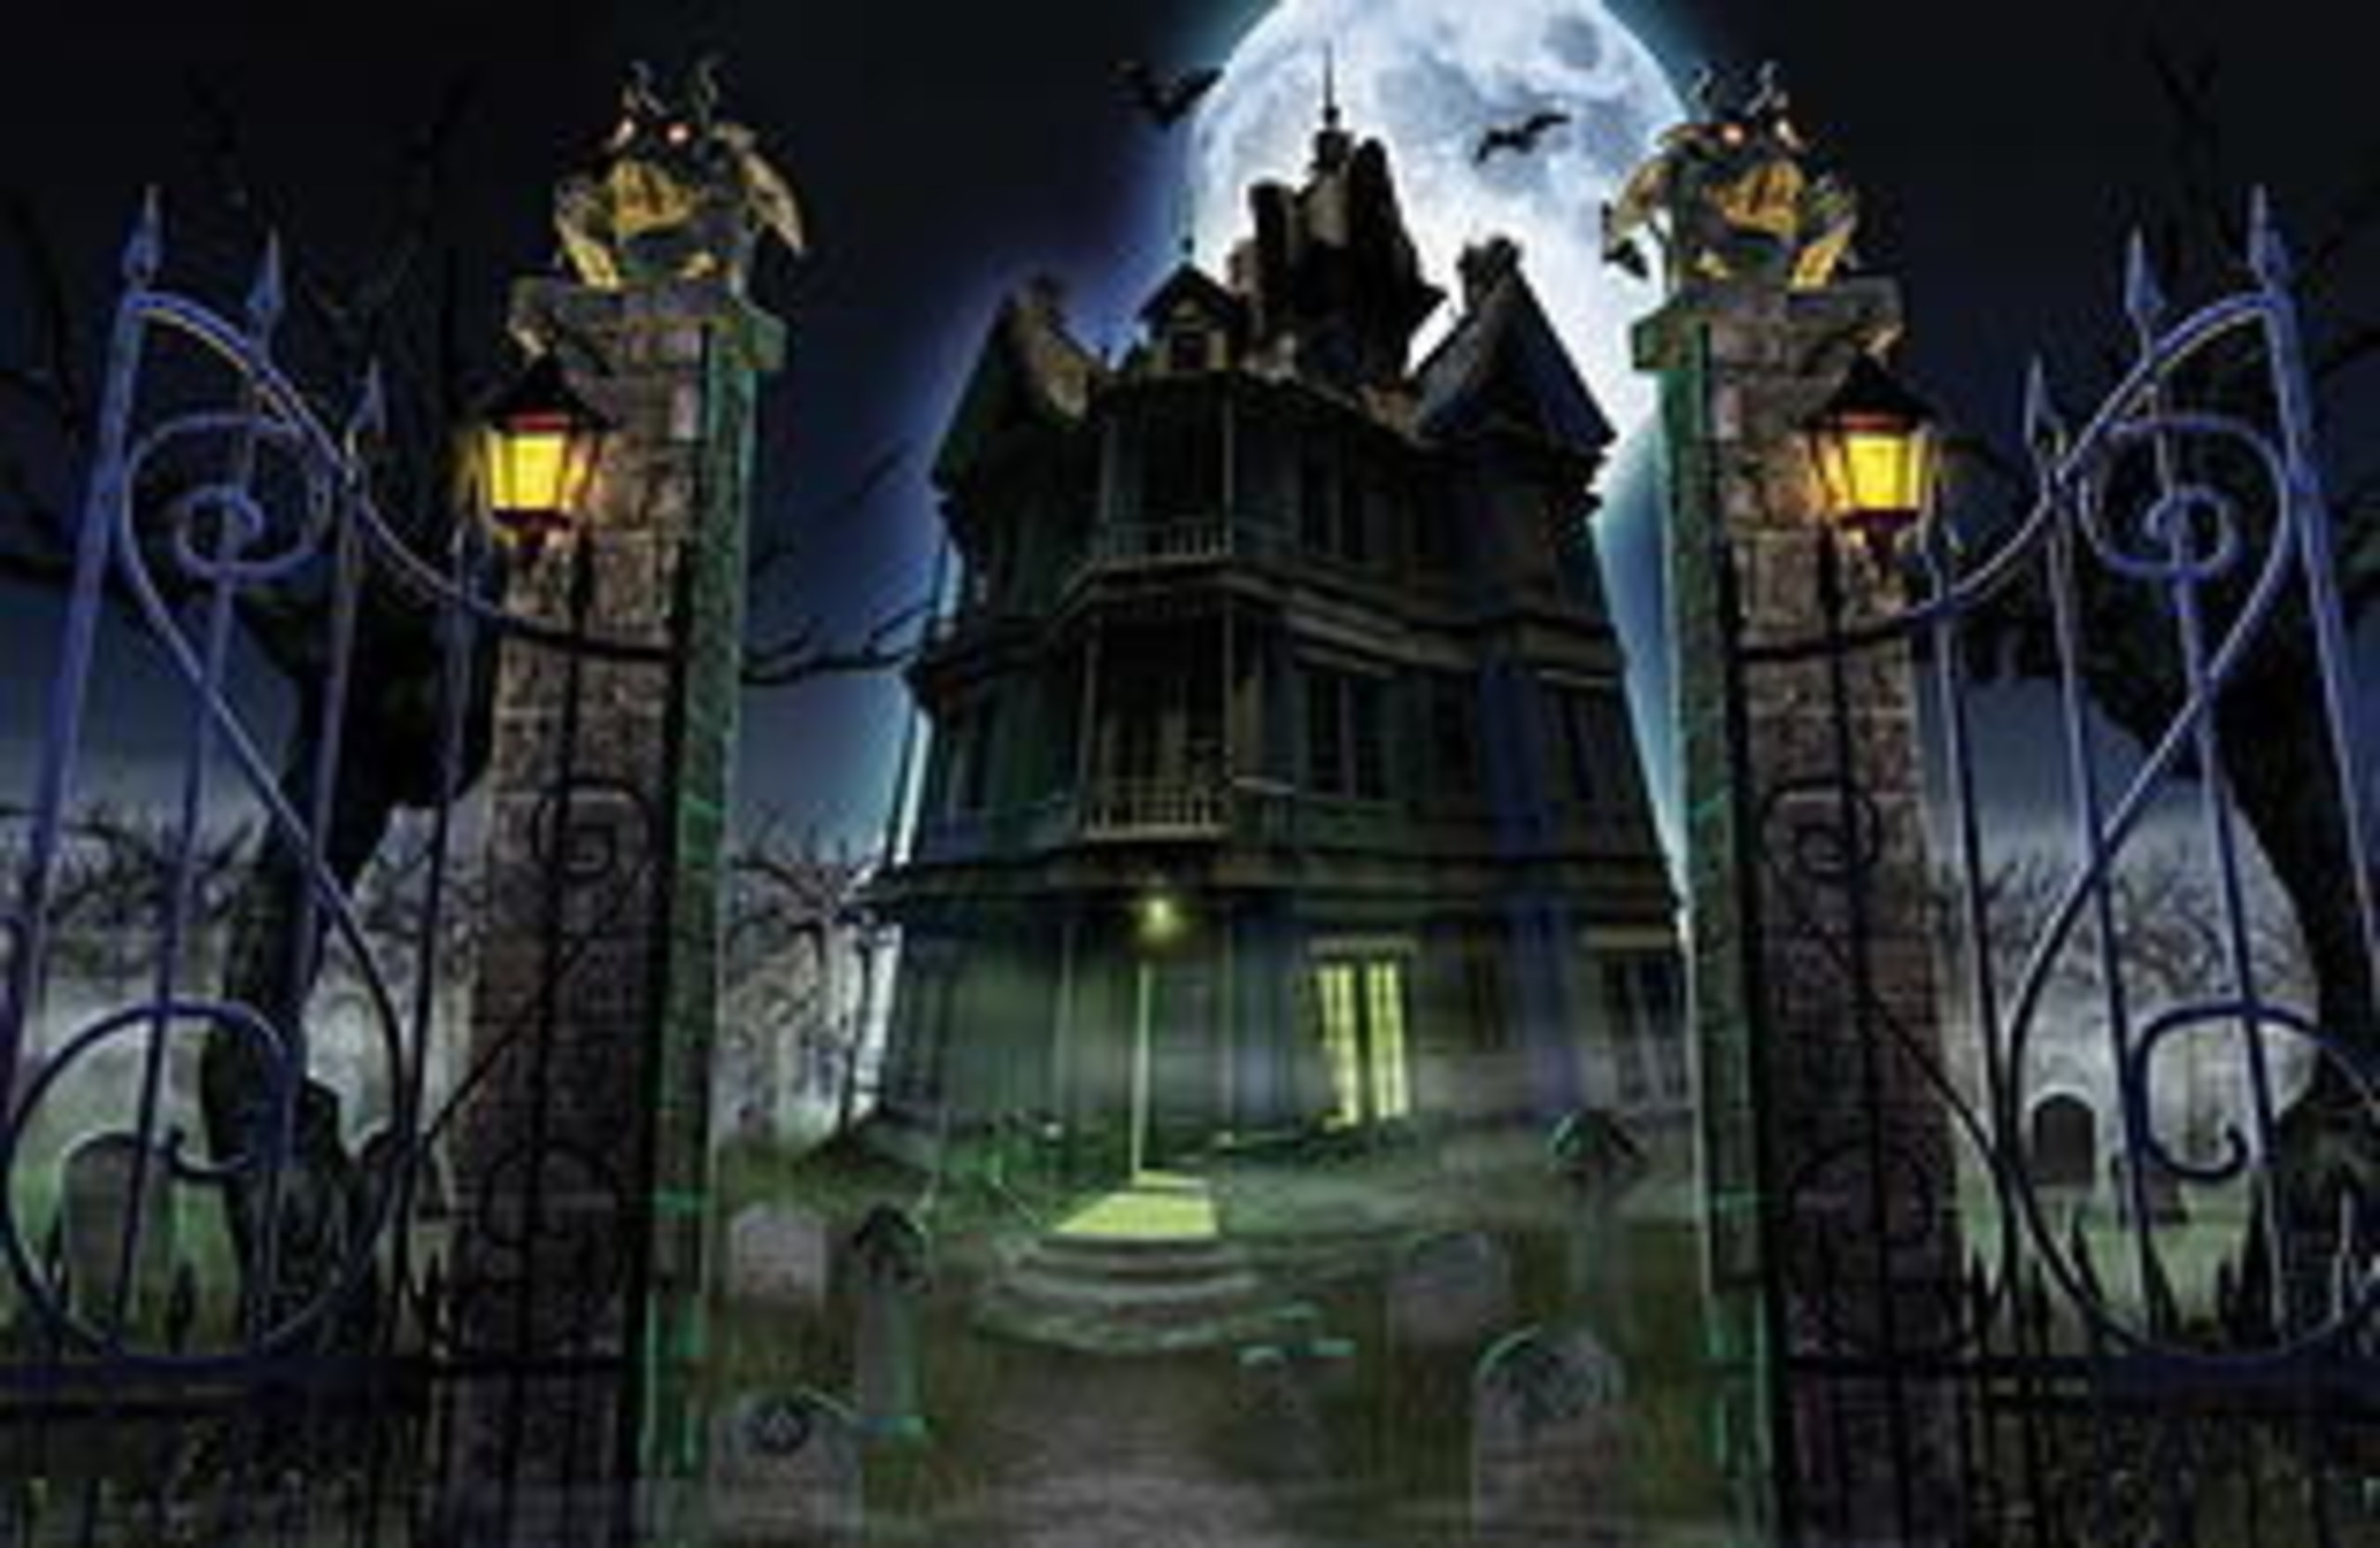 Halloween Trick or Treat? How About 'MEET'? ParanormalMingle.com Offers Spooky Opportunity